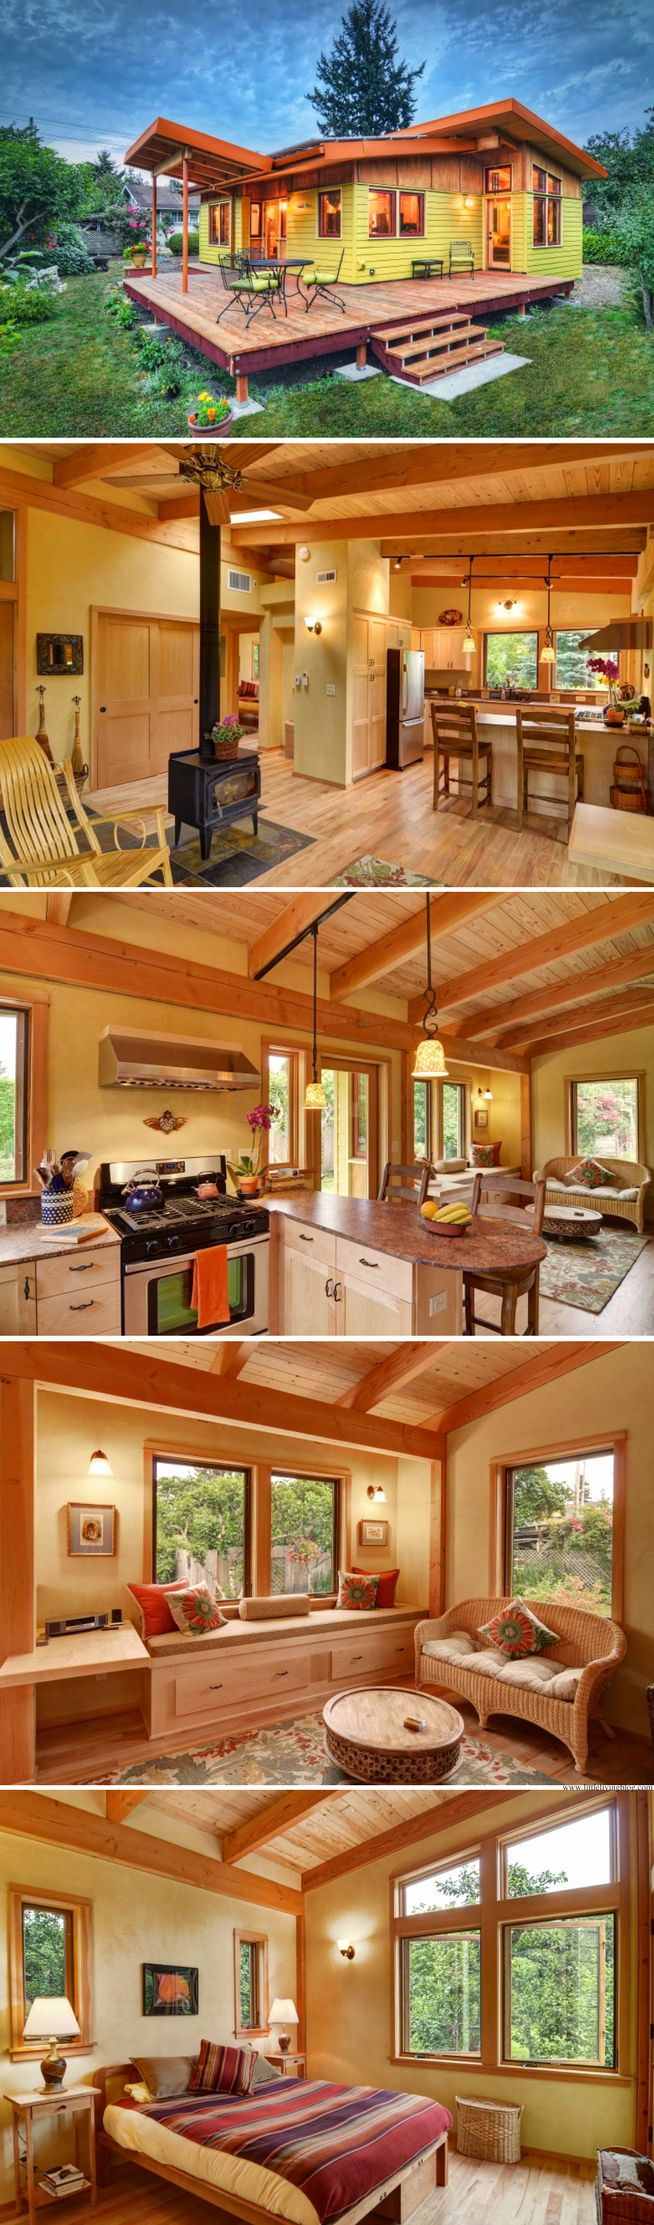 Small Homes See The Plans And Details On How You Can Build One Yourself Small House Plans Tiny House Plans Tiny House